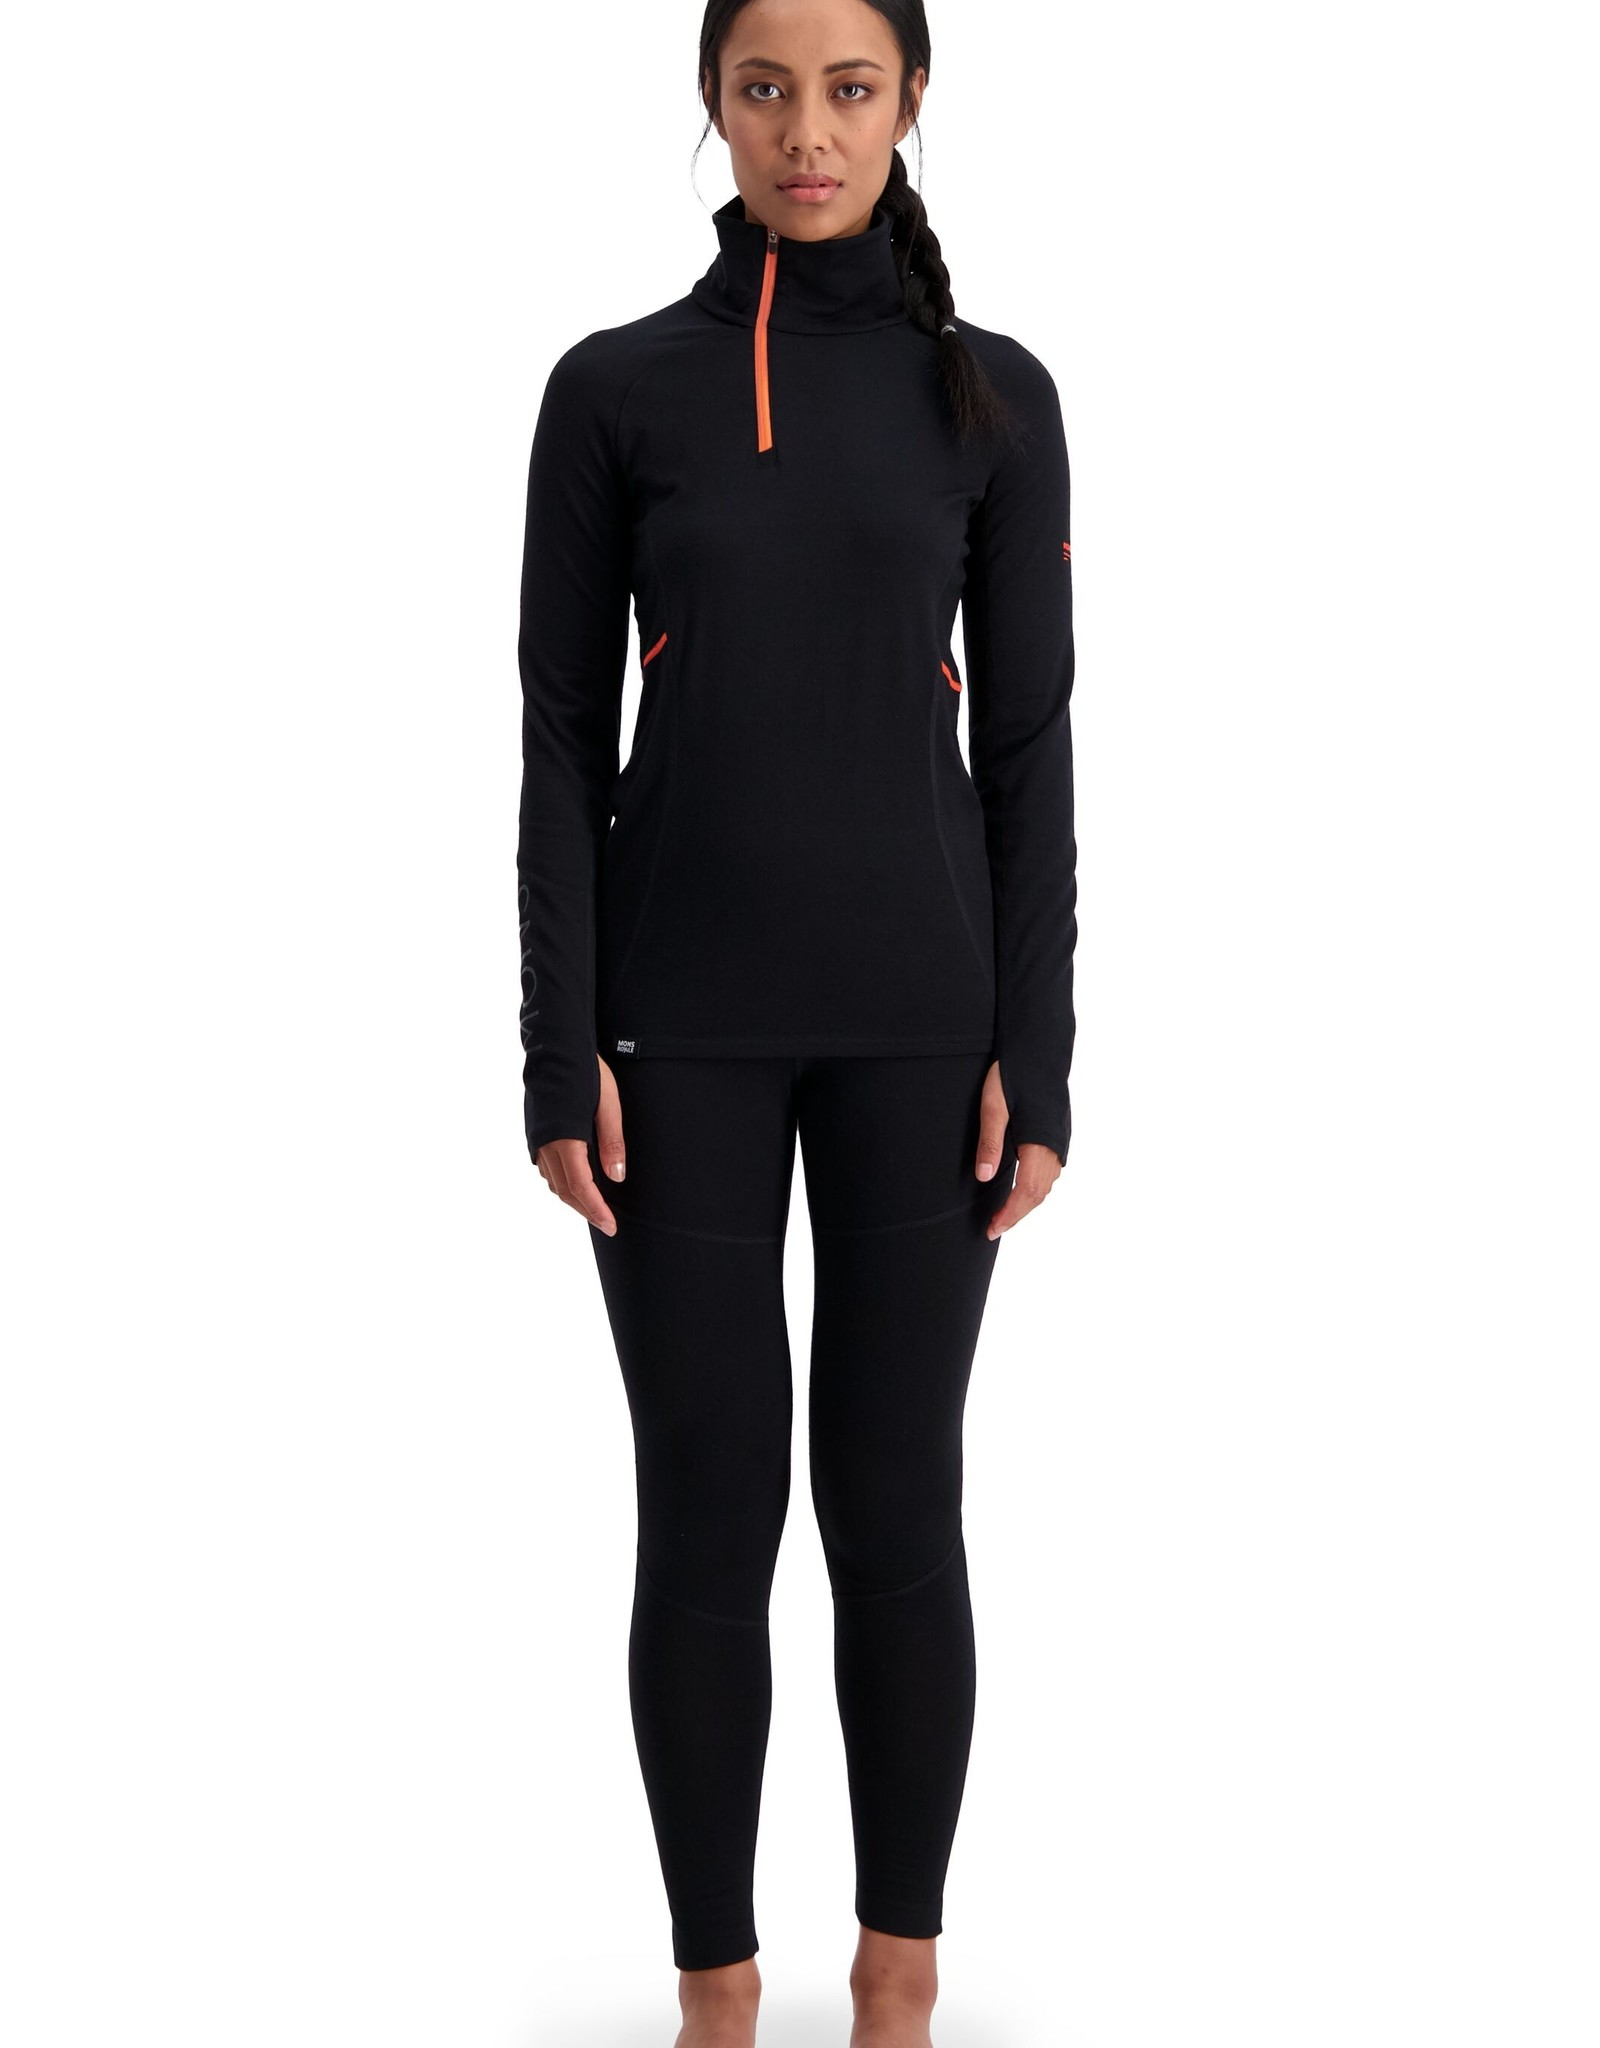 Mons Royale Mons Royale Olympus 3.0 Half Zip-Black-Women's -W2020